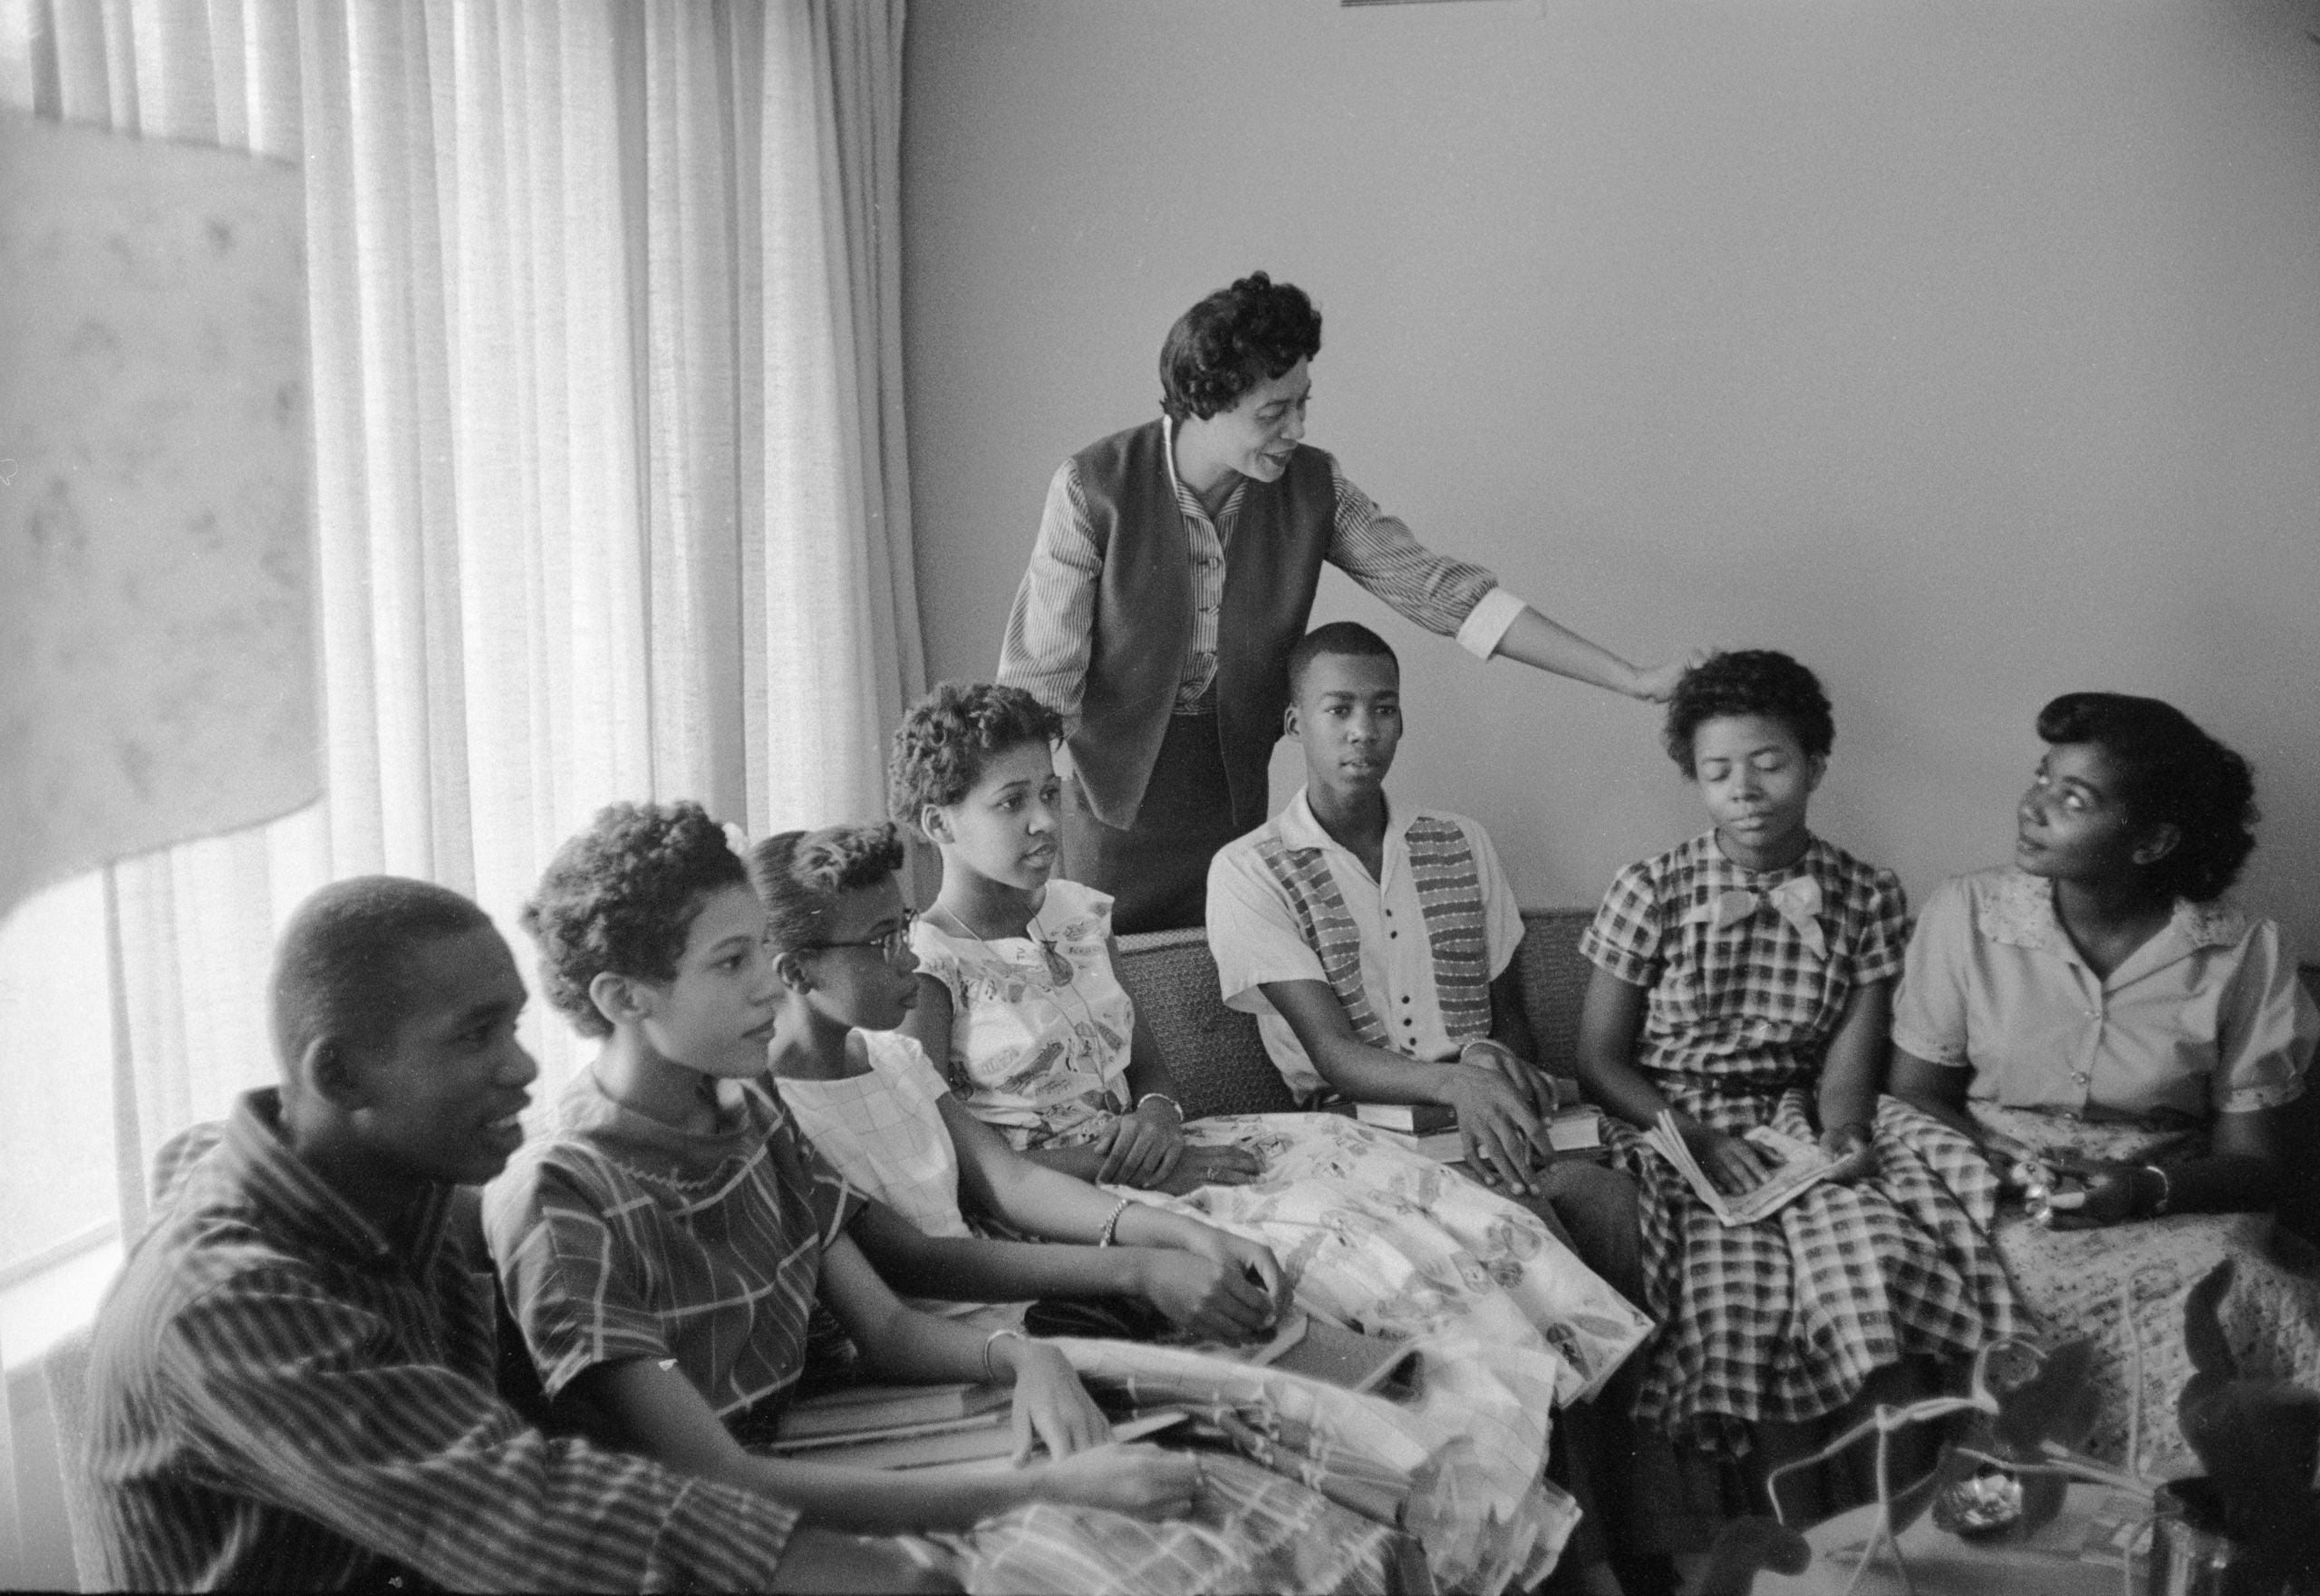 Daisy Bates  talks with some of the Little Rock Nine at her home in Little Rock, Arkansas